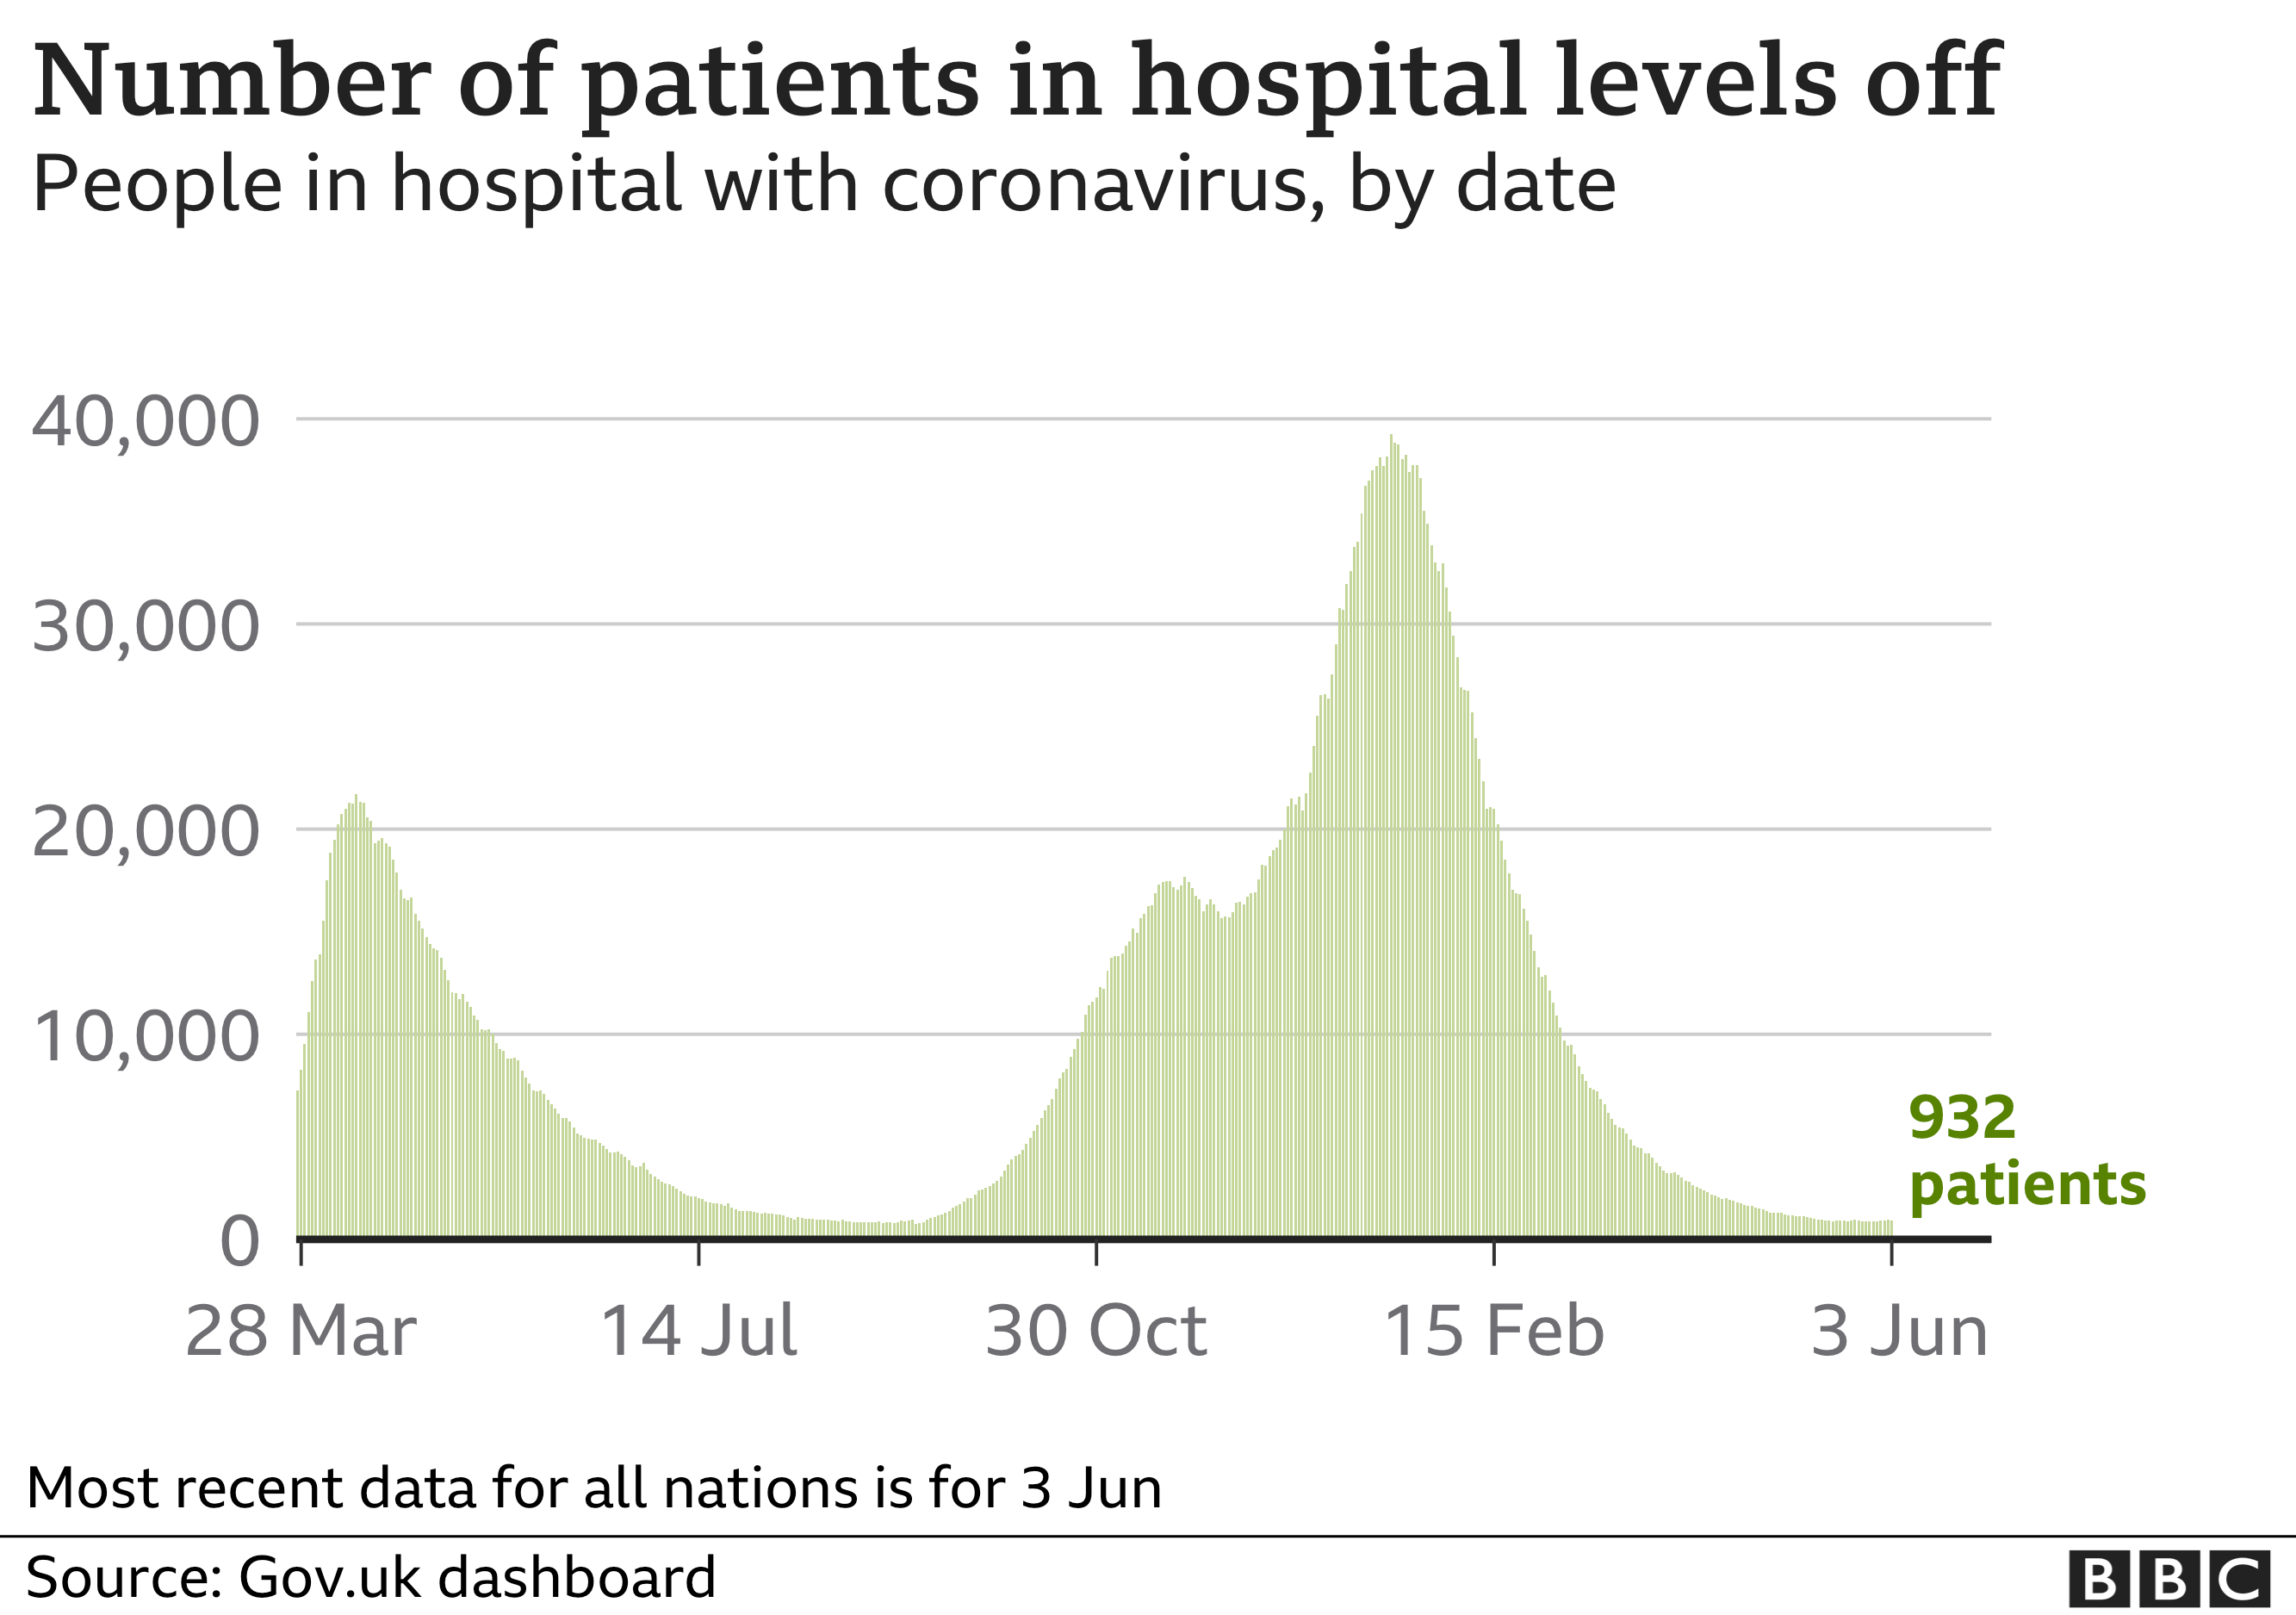 A chart showing the number of patients in hospital with Covid in the UK